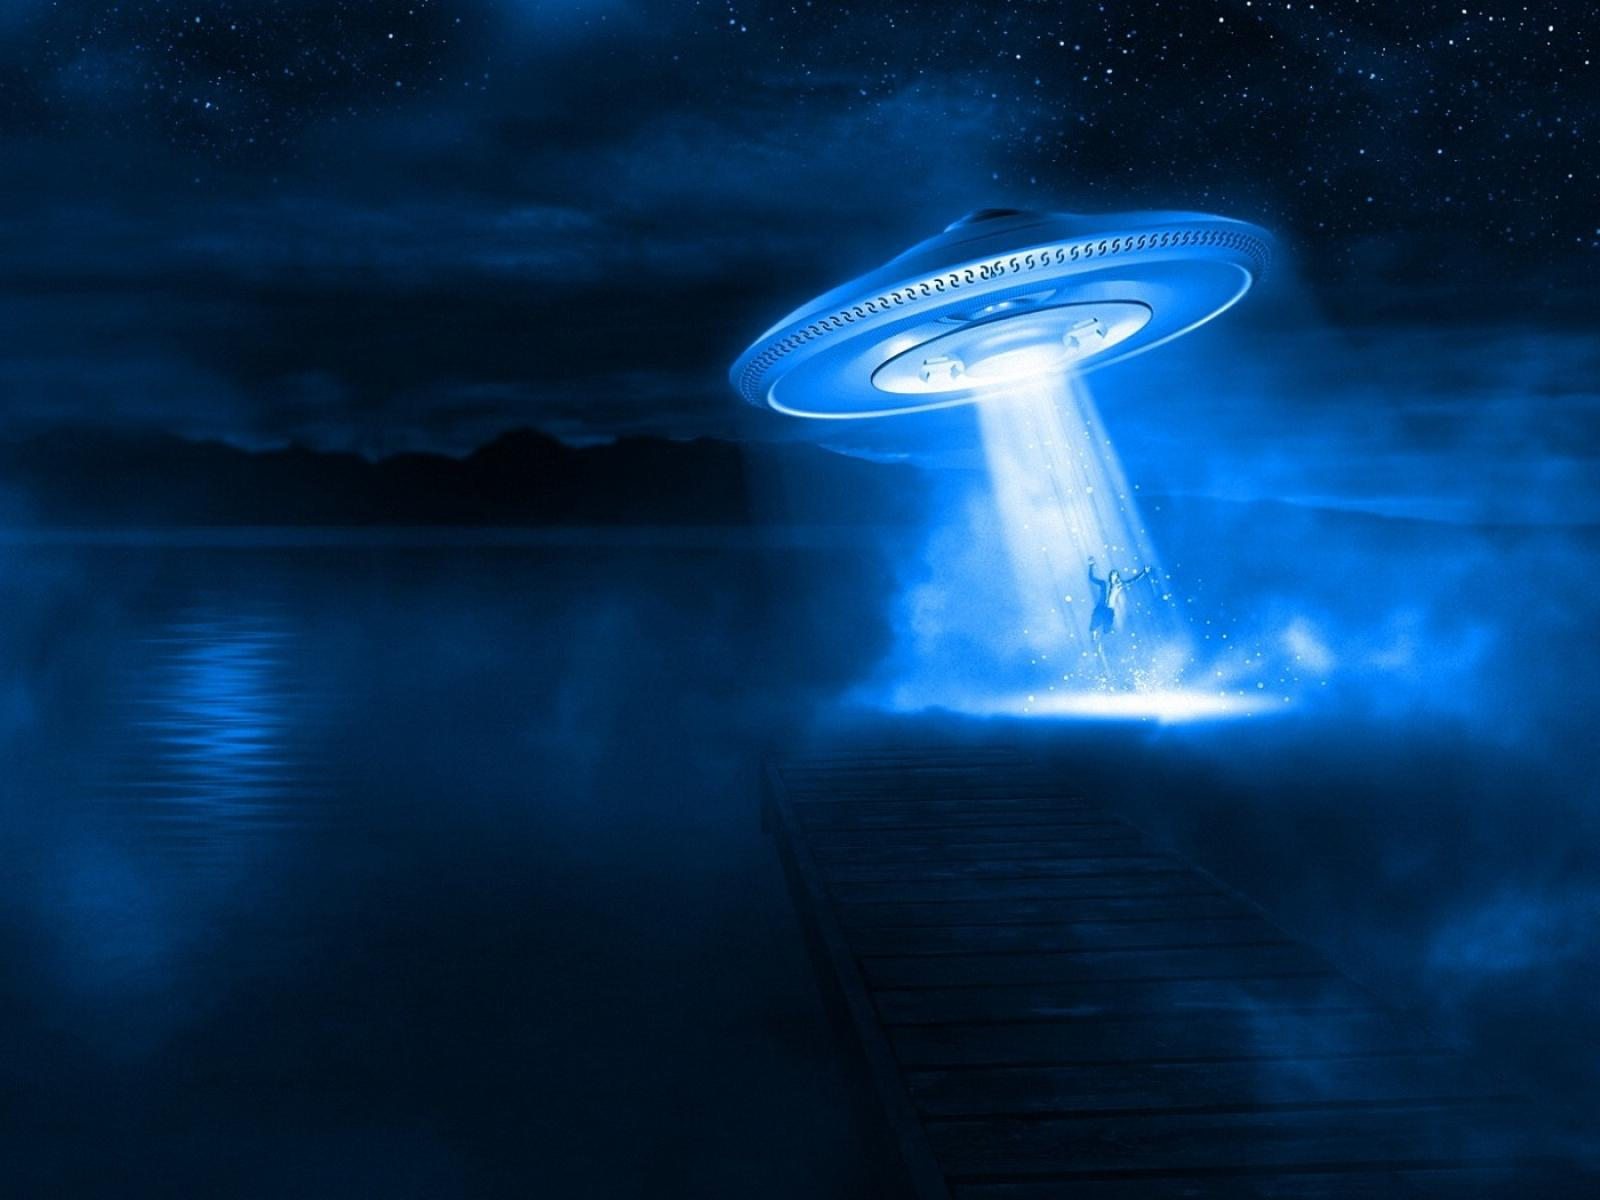 UFO Abduction wallpapers UFO Abduction stock photos 1600x1200